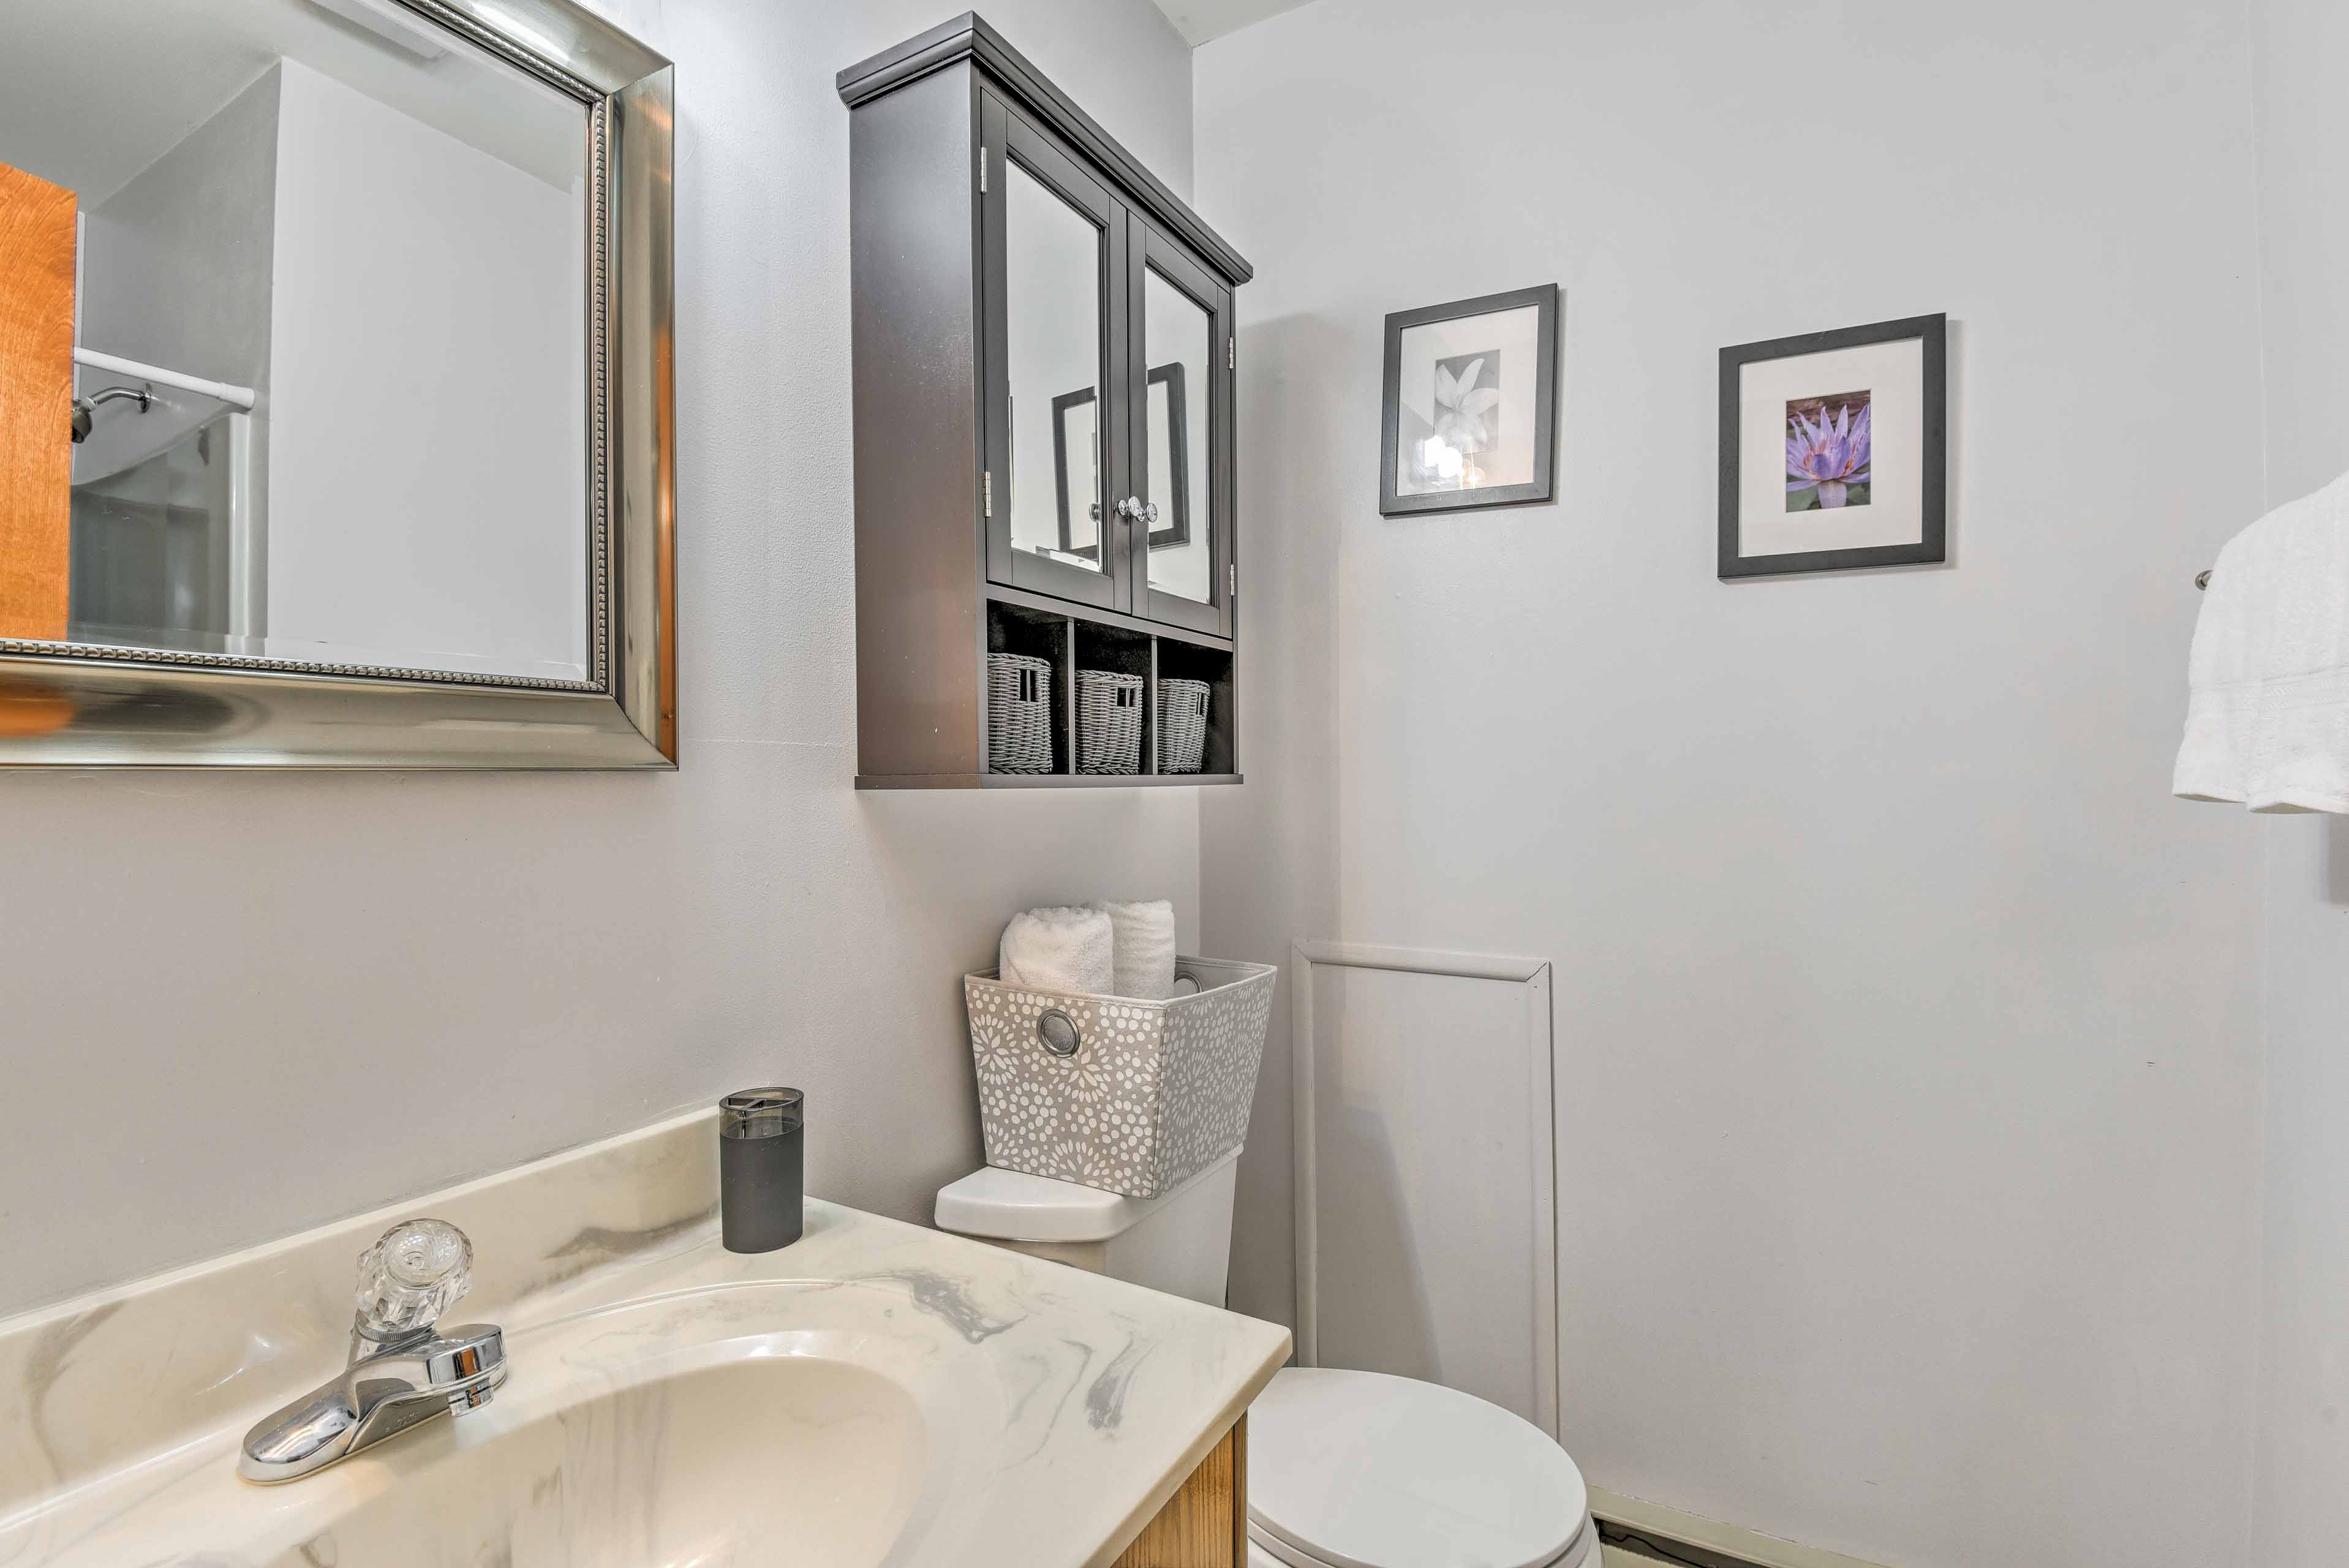 This home includes 2 full bathrooms.